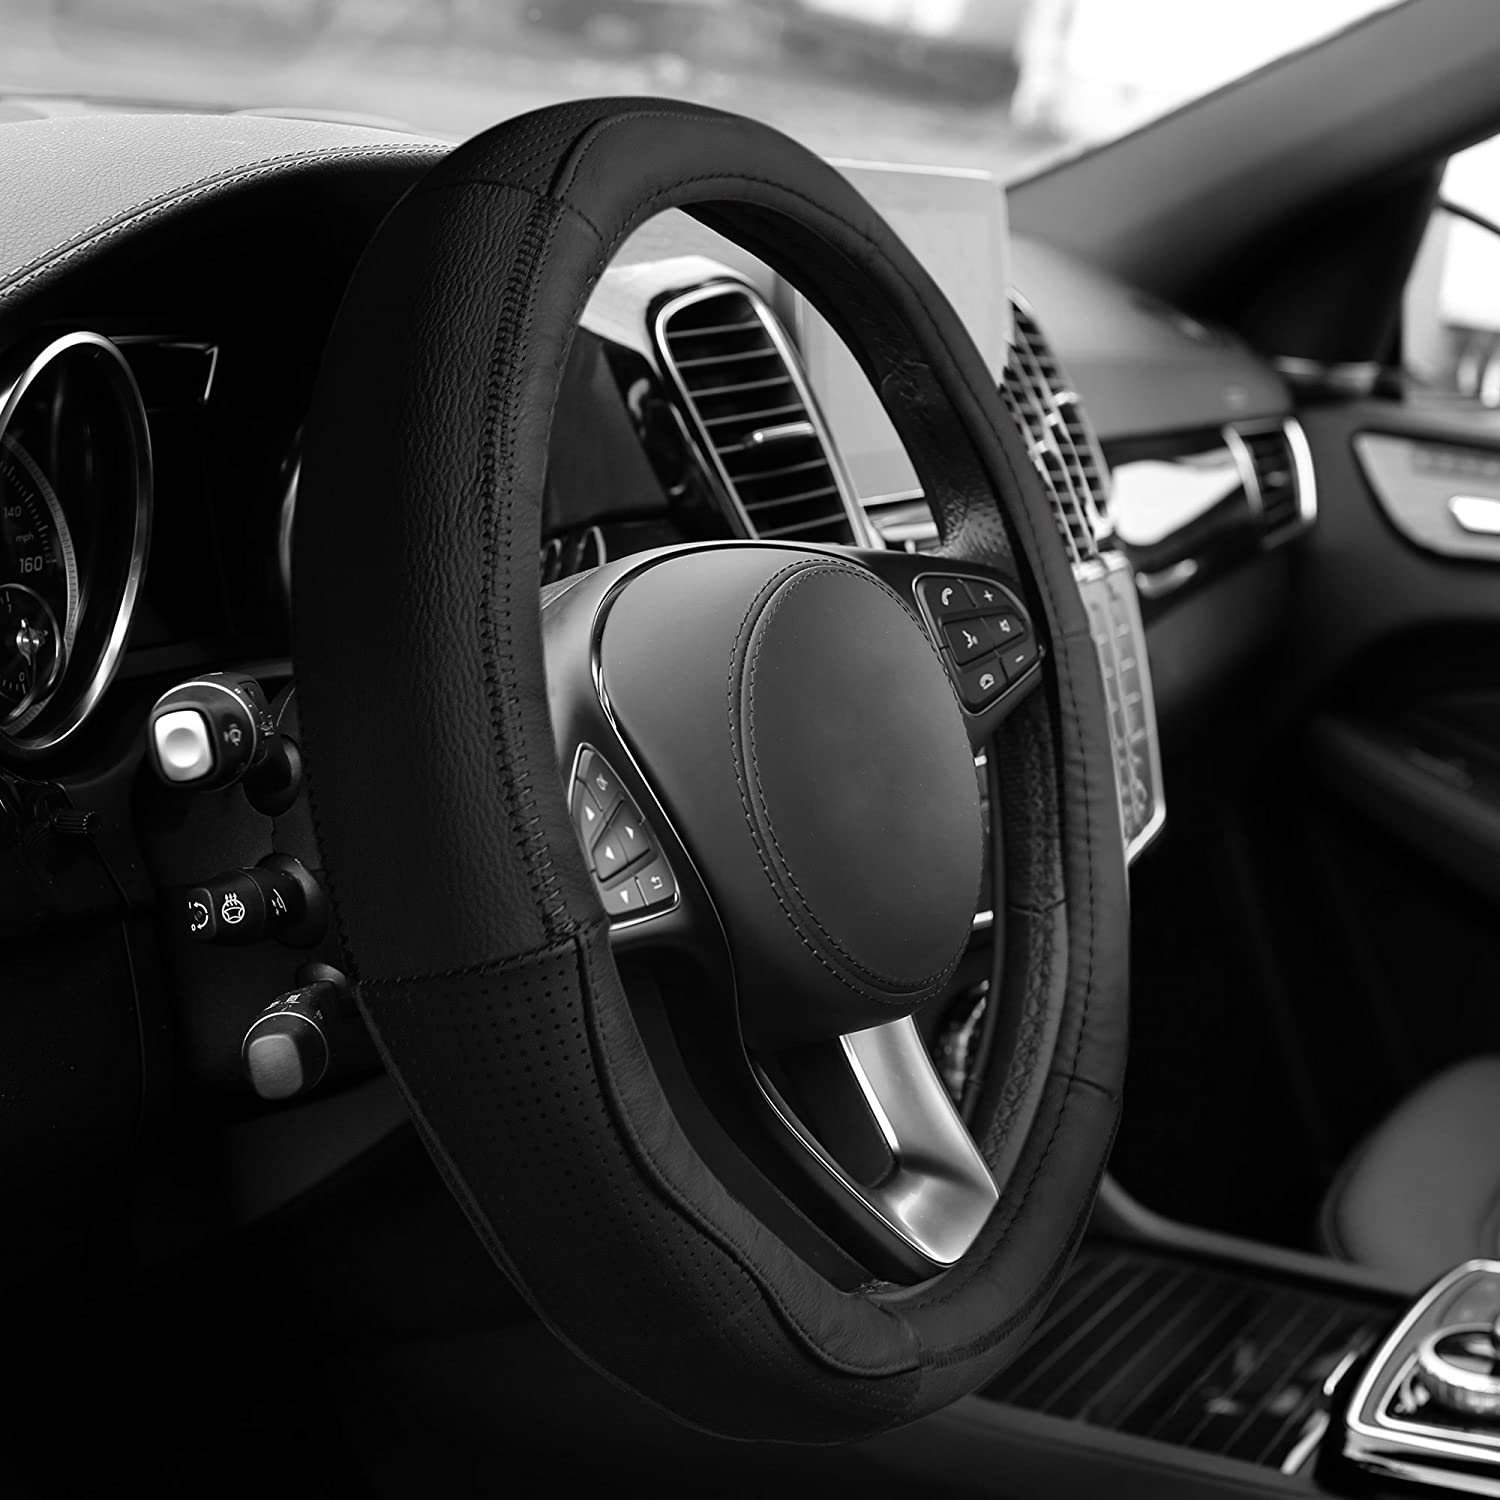 FH Group FH2007BLACK Black Sleek and Sporty Leather Steering Wheel Cover